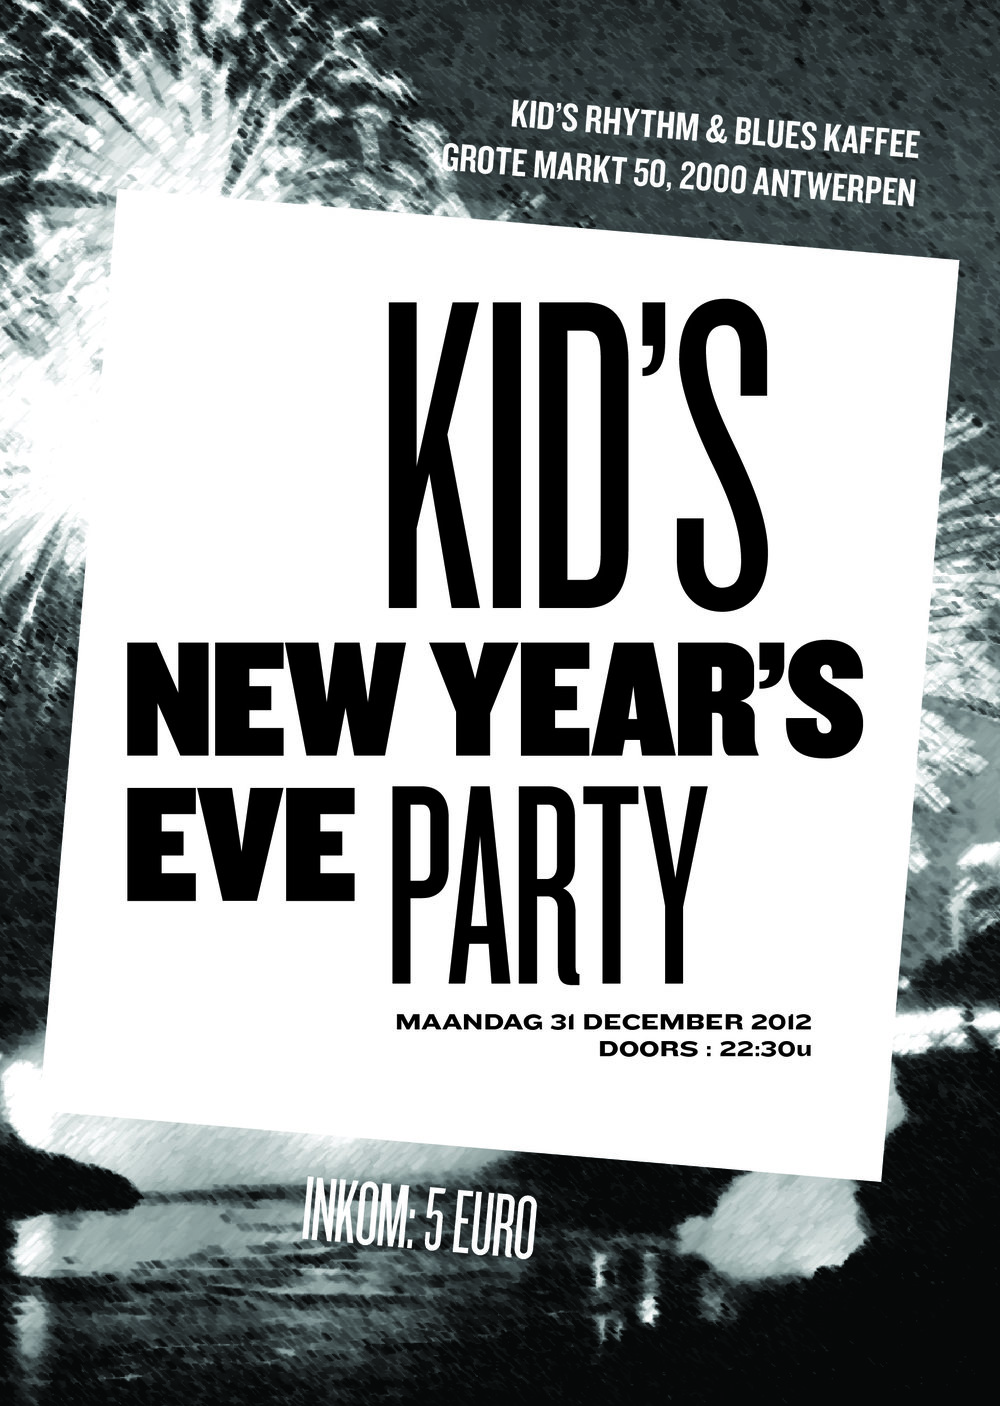 New Year's Eve Party 2012